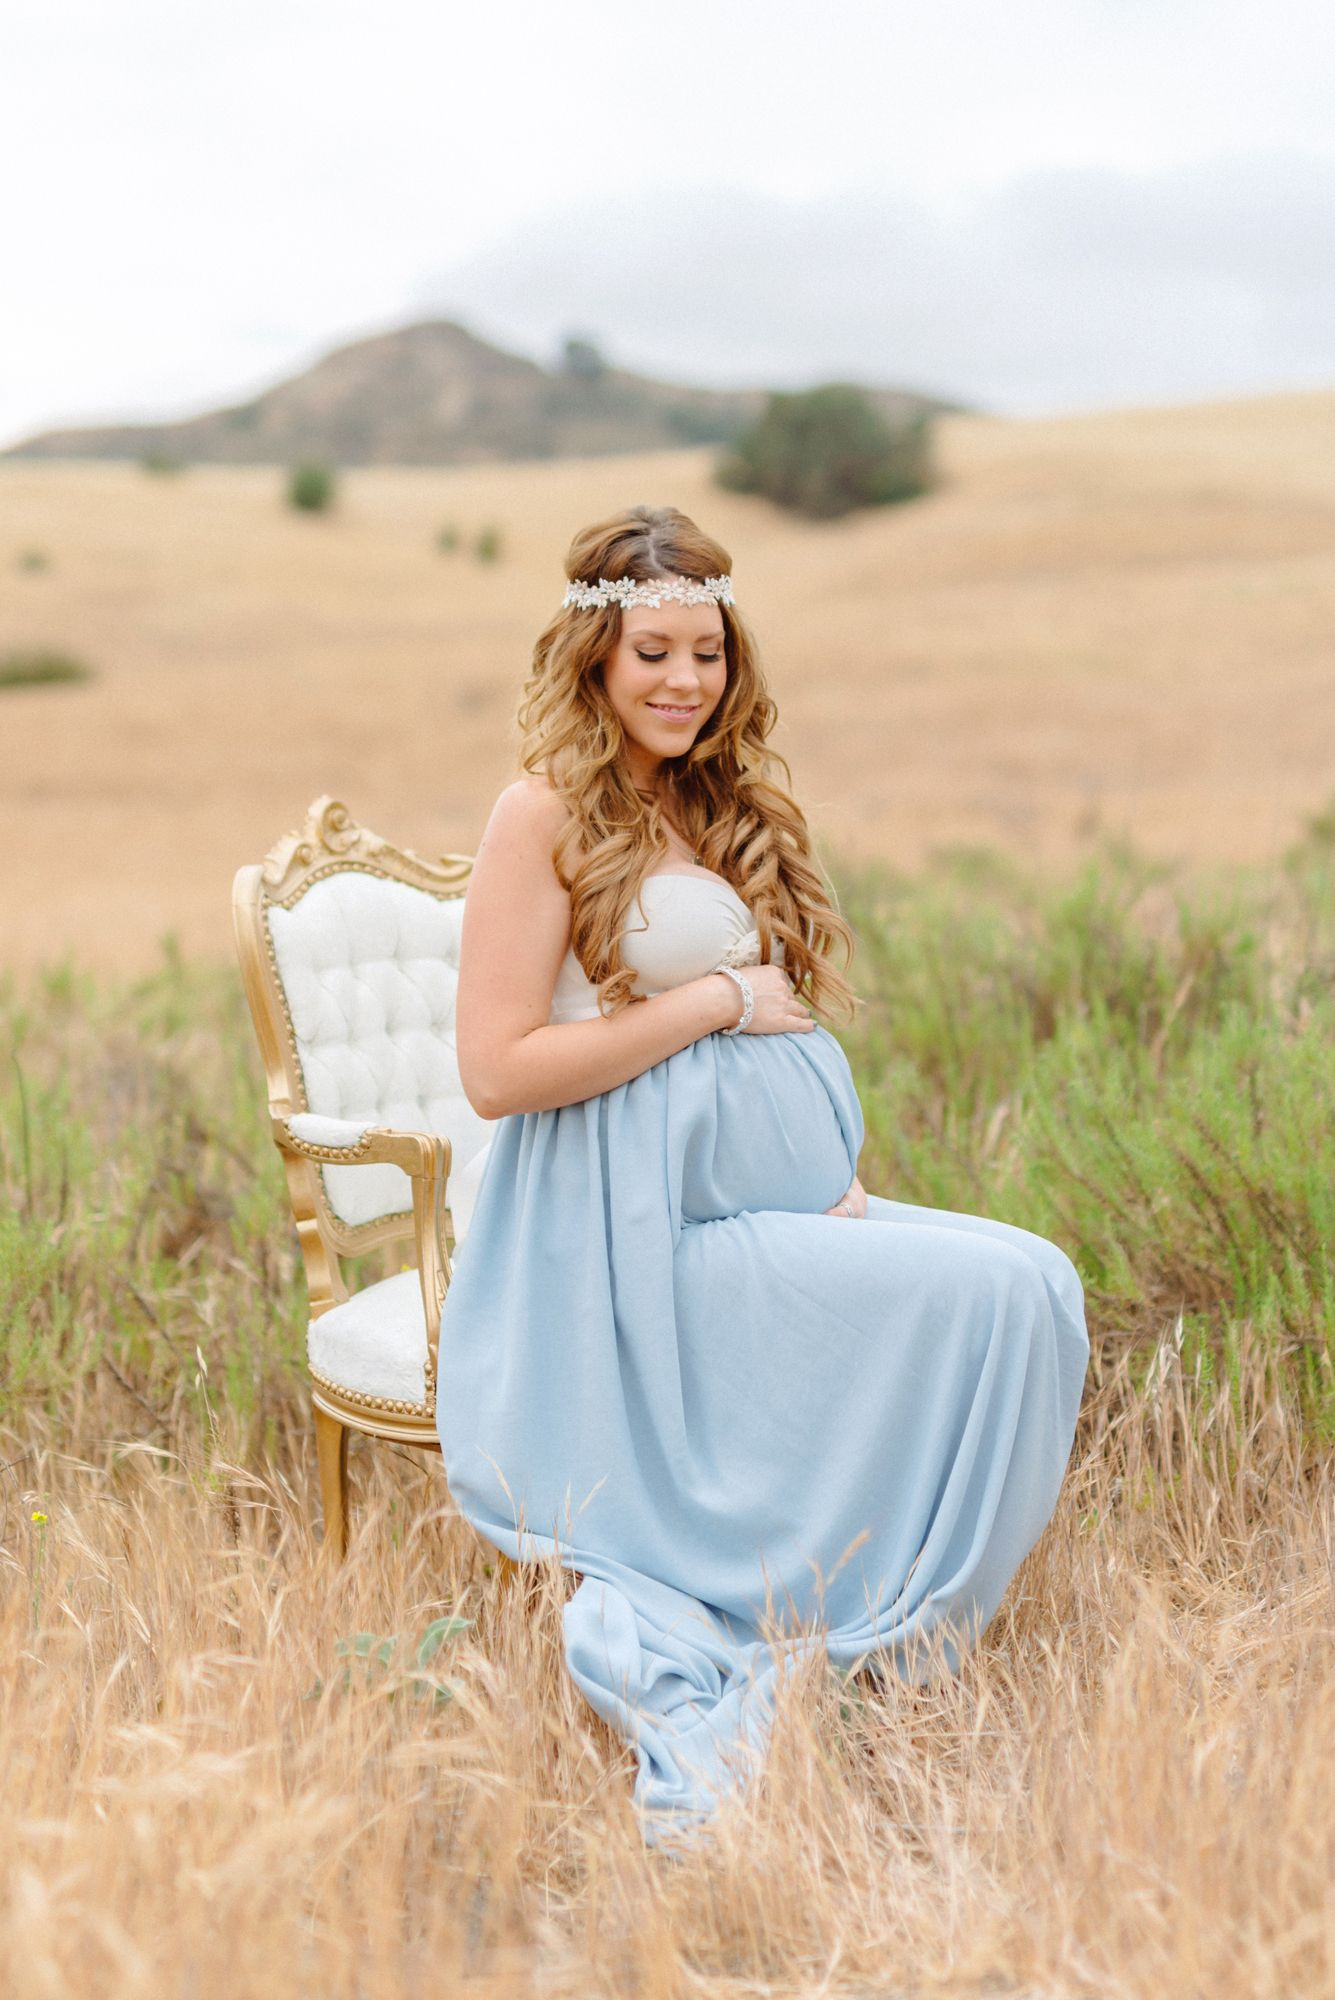 Best Pre Maternity Photo Shoot / Pregnancy PhotoShoot for